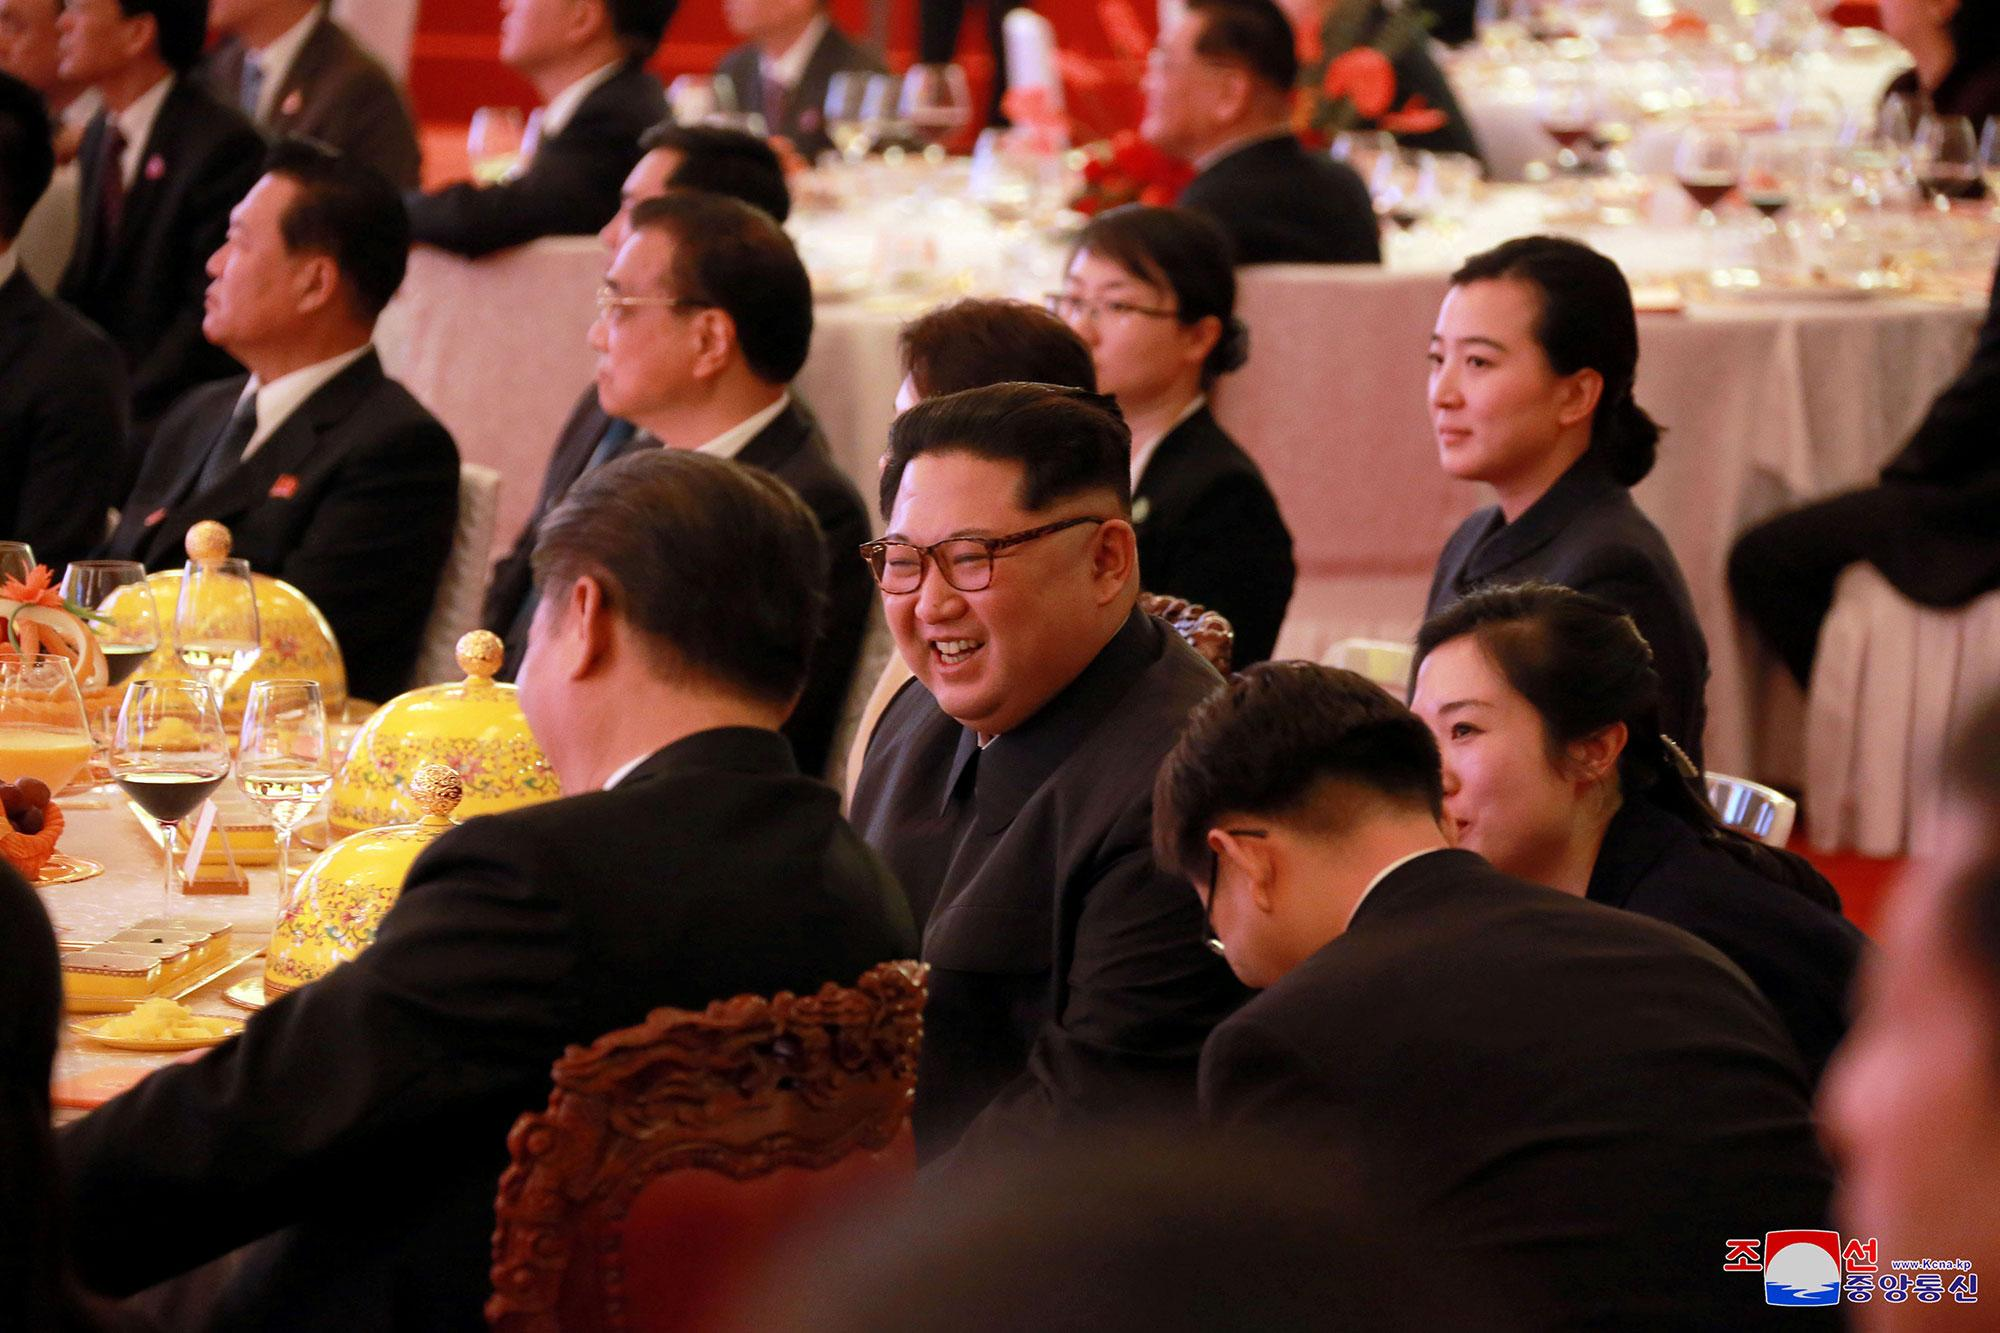 <p>North Korean leader Kim Jong Un smiles during a banquet in Beijing, as he paid an unofficial visit to China, in this undated photo released by North Korea's Korean Central News Agency (KCNA) in Pyongyang, March 28, 2018. (Photo: KCNA/via Reuters) </p>